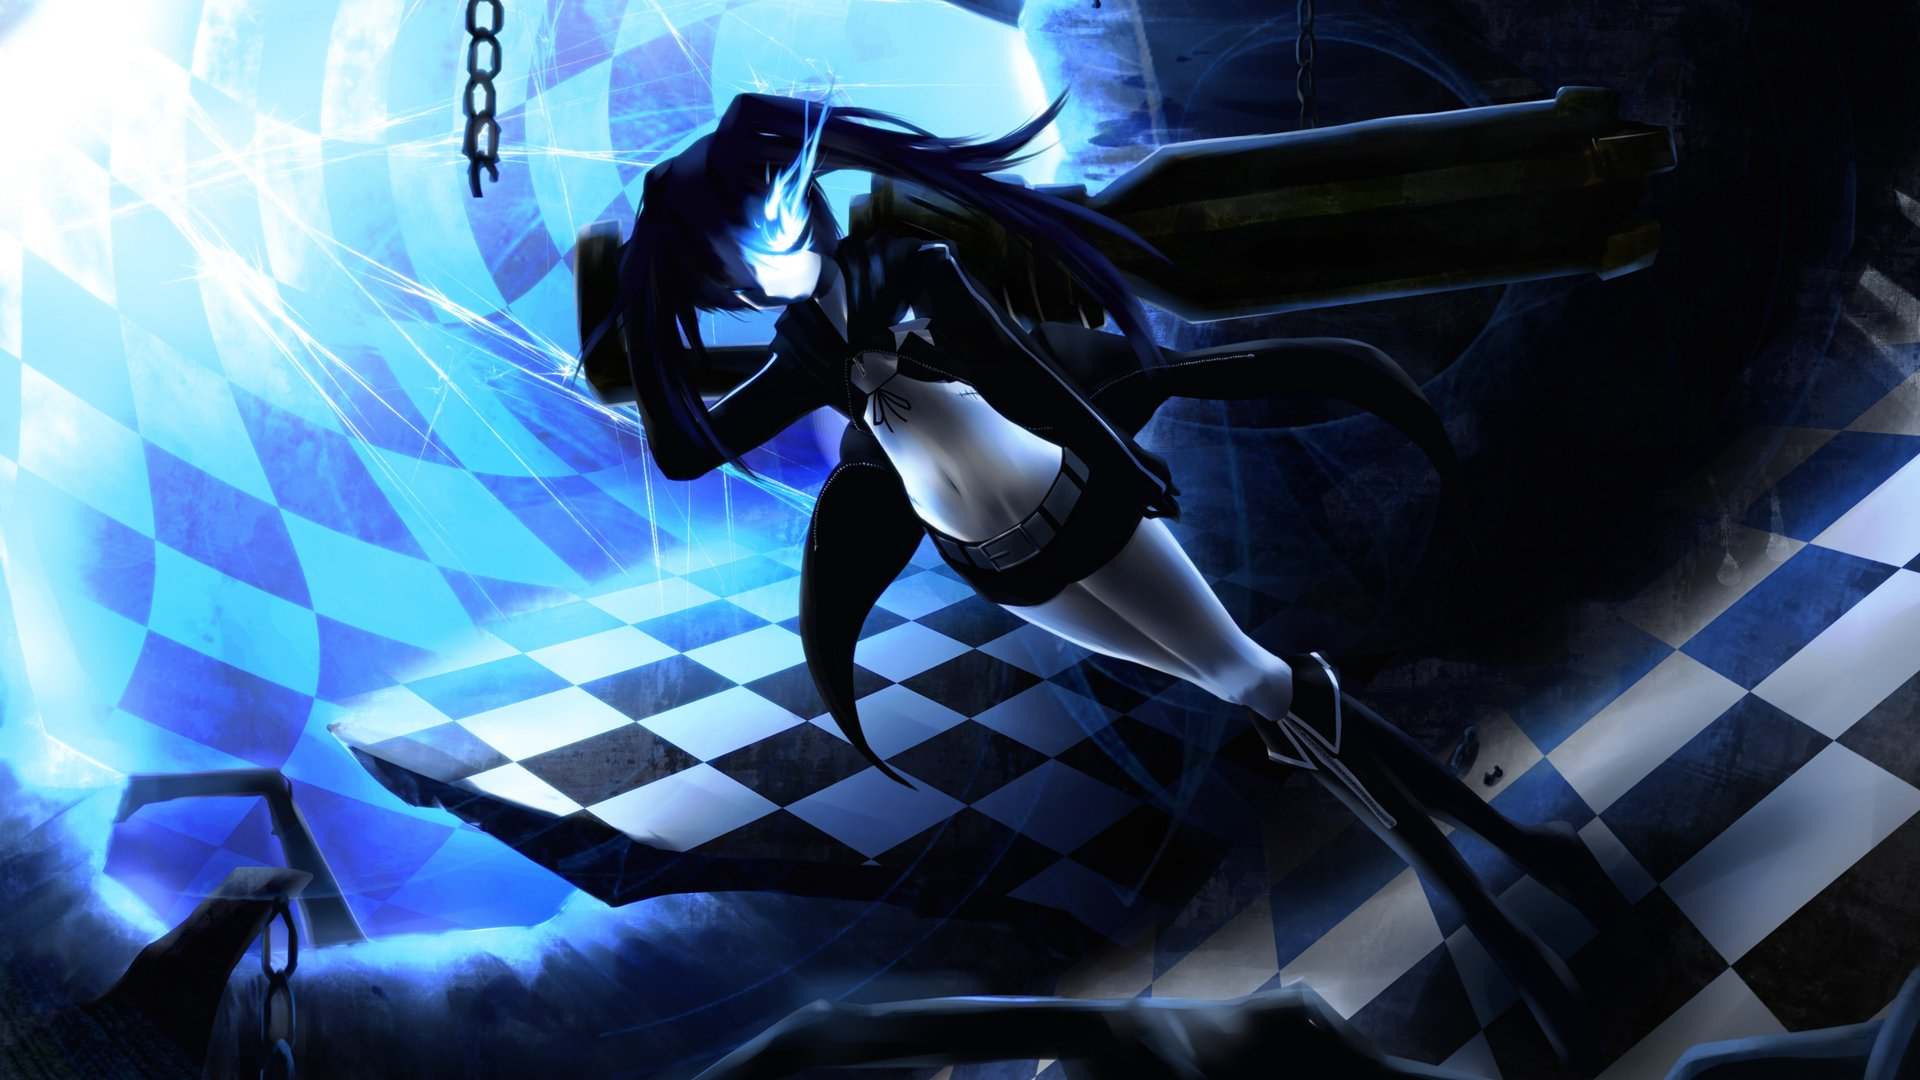 Wallpaper Engine Falling Girl Black Rock Shooter Hd Wallpaper Background Image